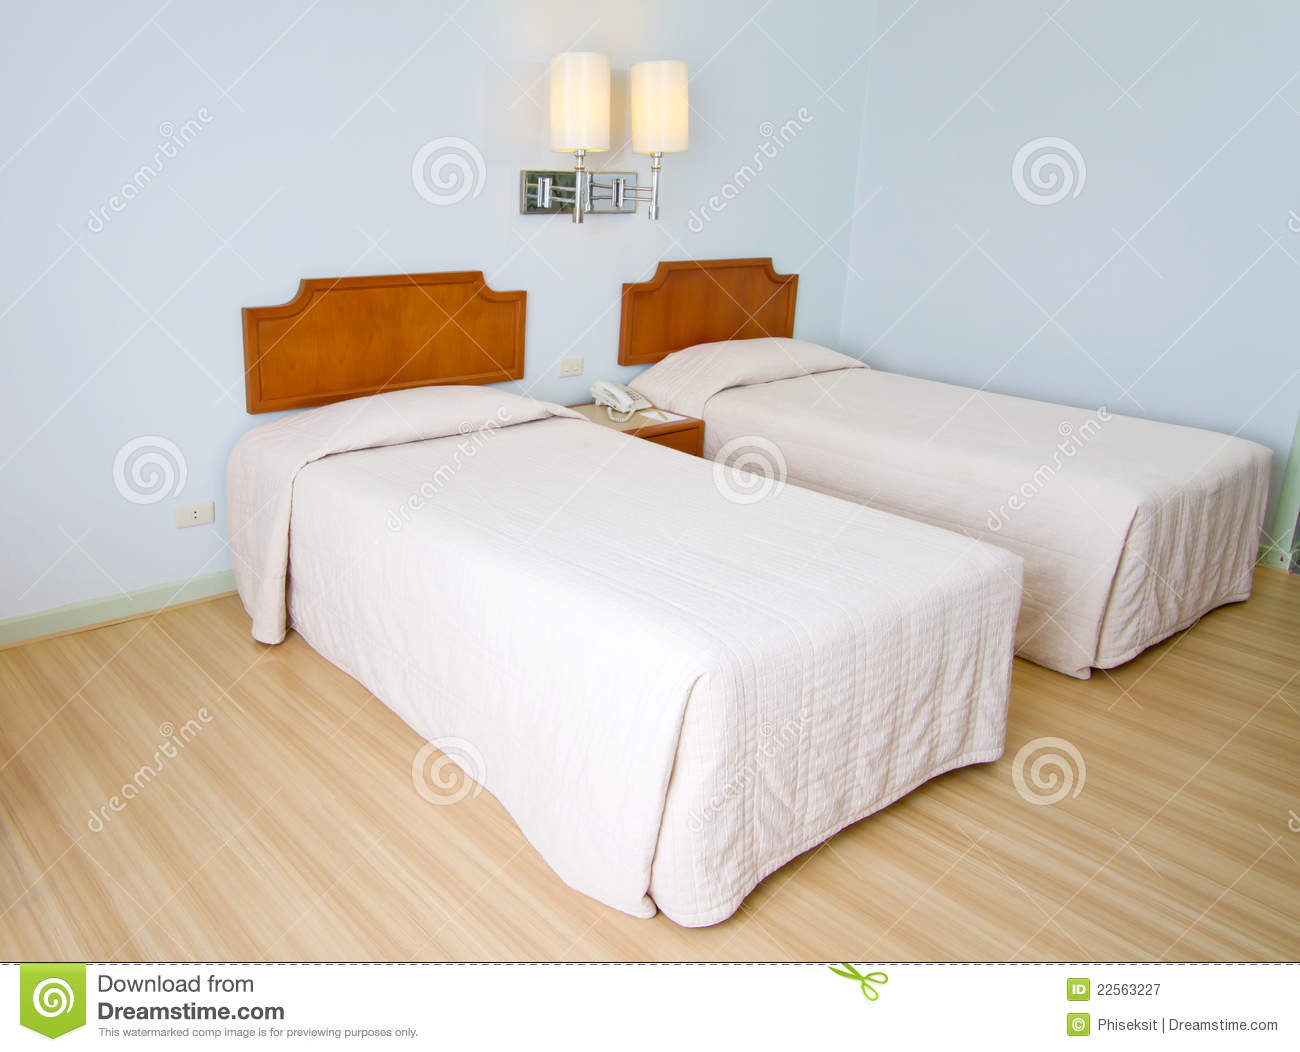 Bed room royalty free stock photography image 22563227 for Sofa bed thailand